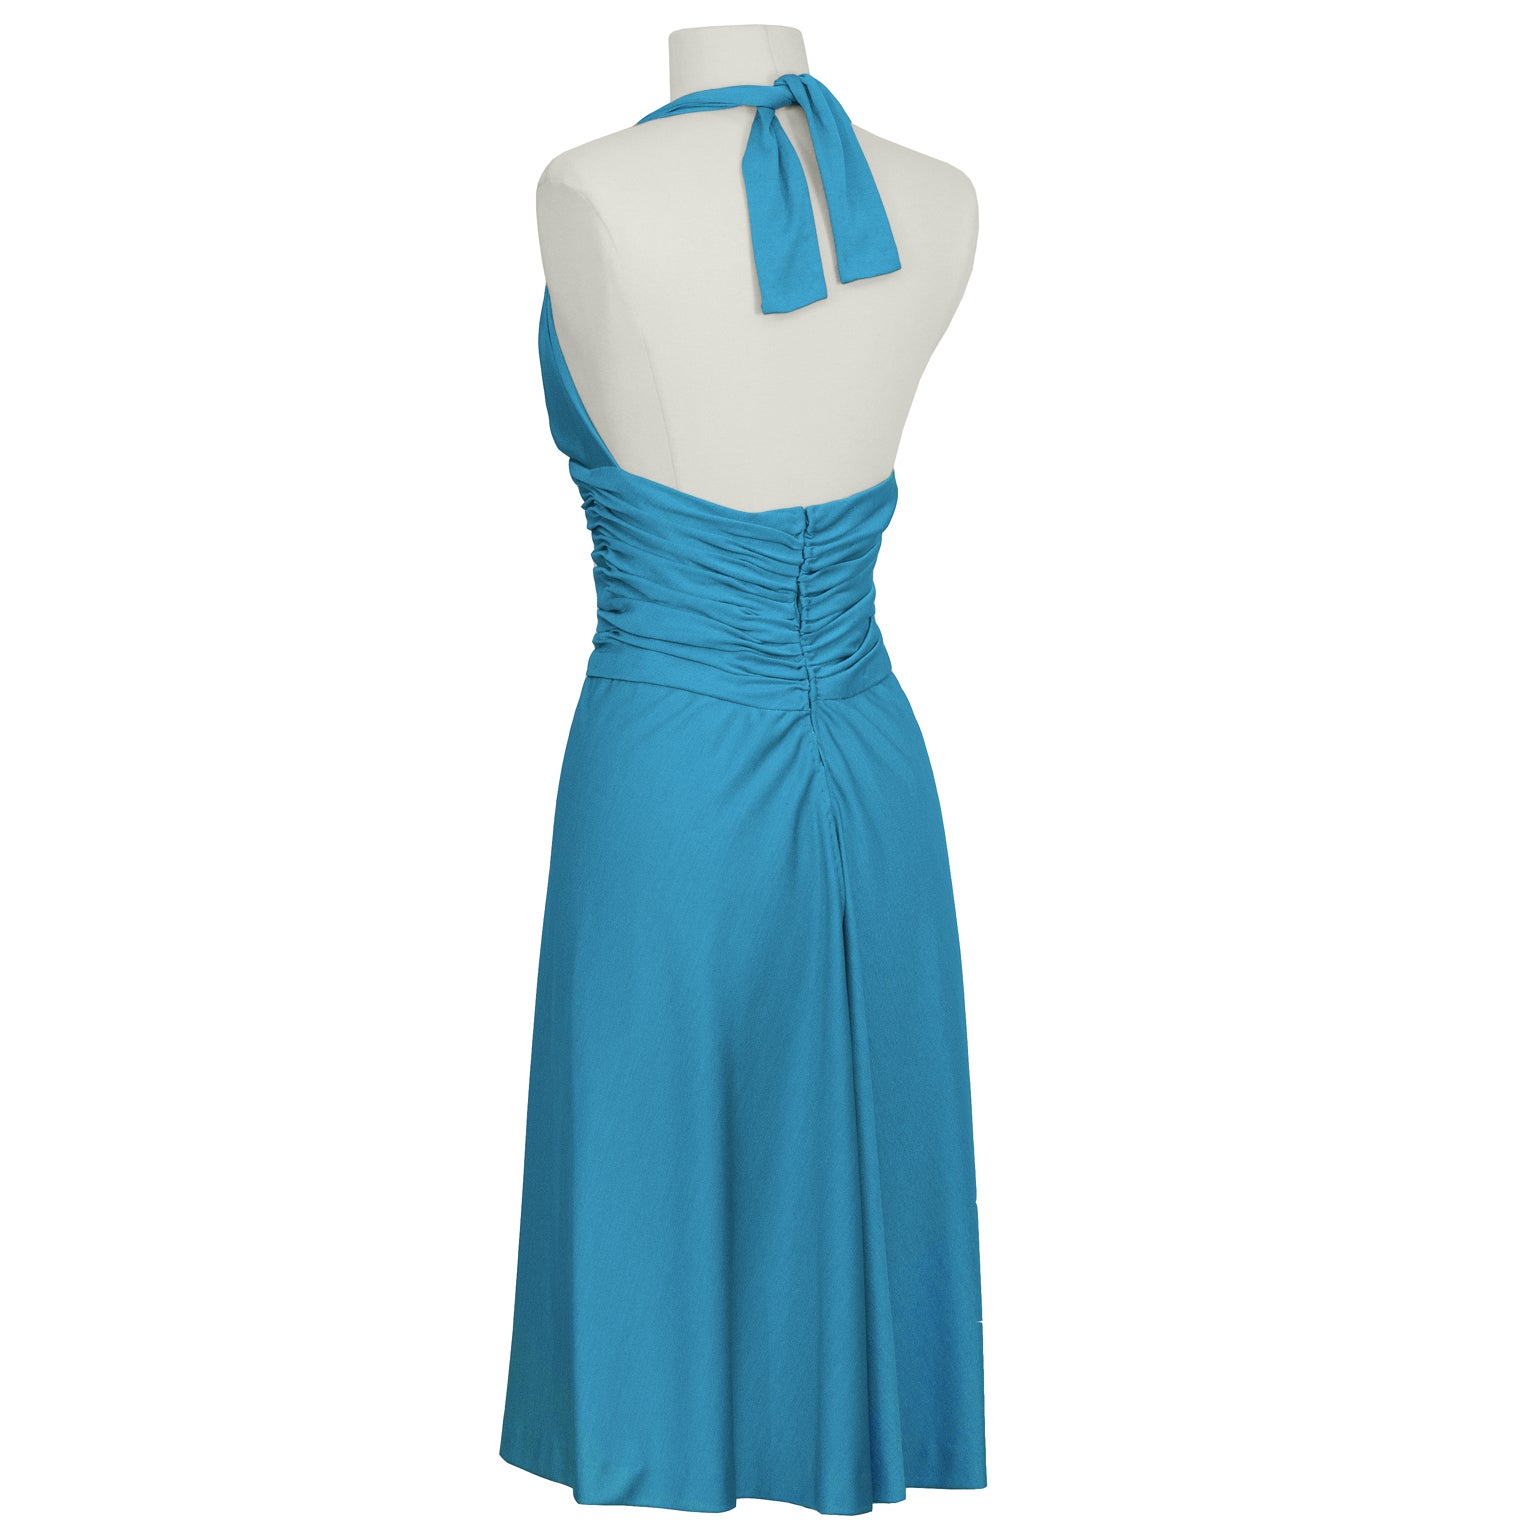 1980\'s Loris Azzaro Turquoise Halter Dress For Sale at 1stdibs